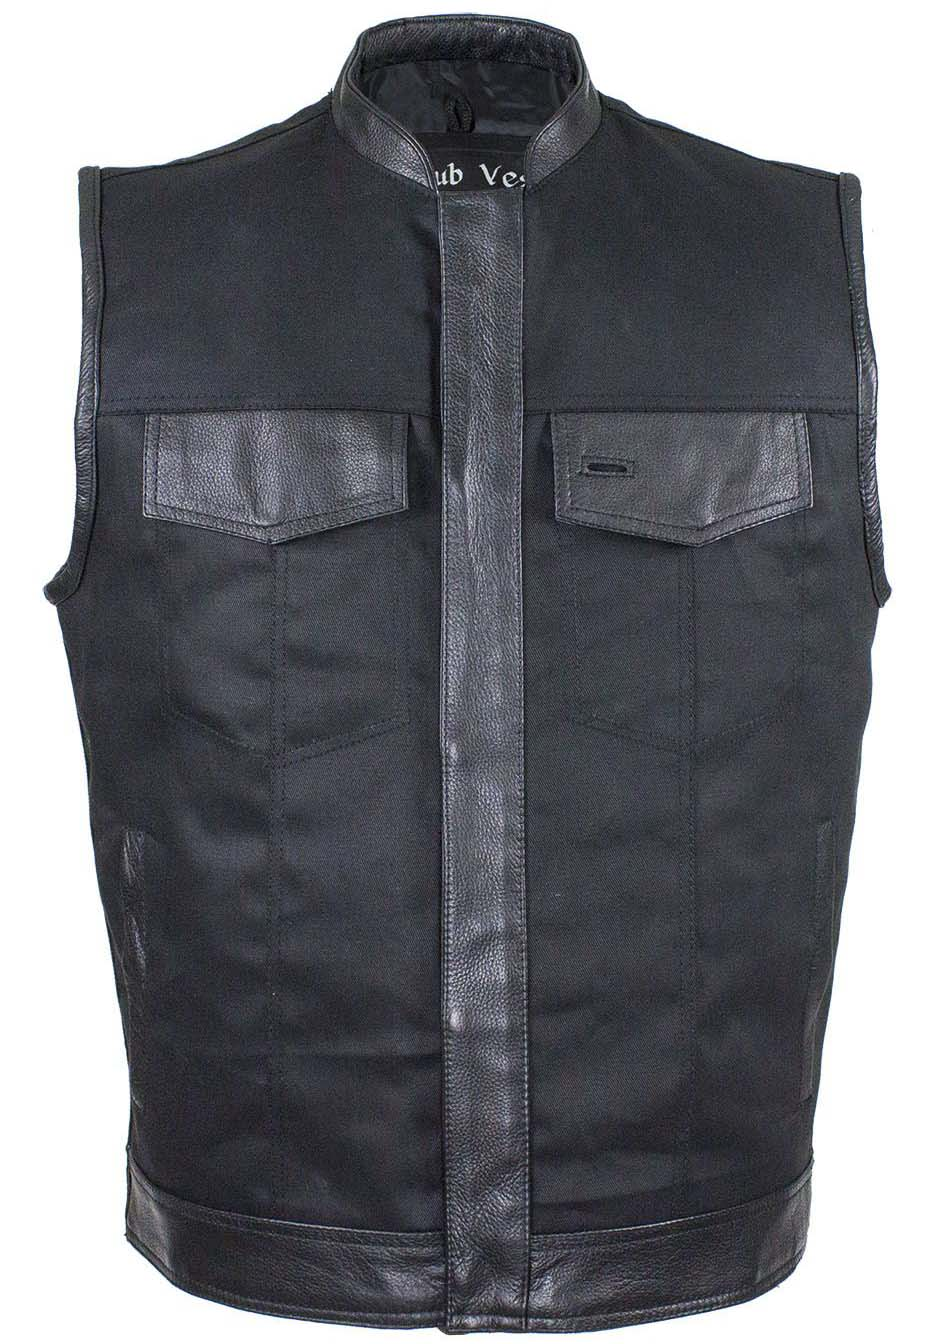 Black Denim Club Vest with Leather Trim For Men - SKU CL-MV8019-ZIP-BD-DL